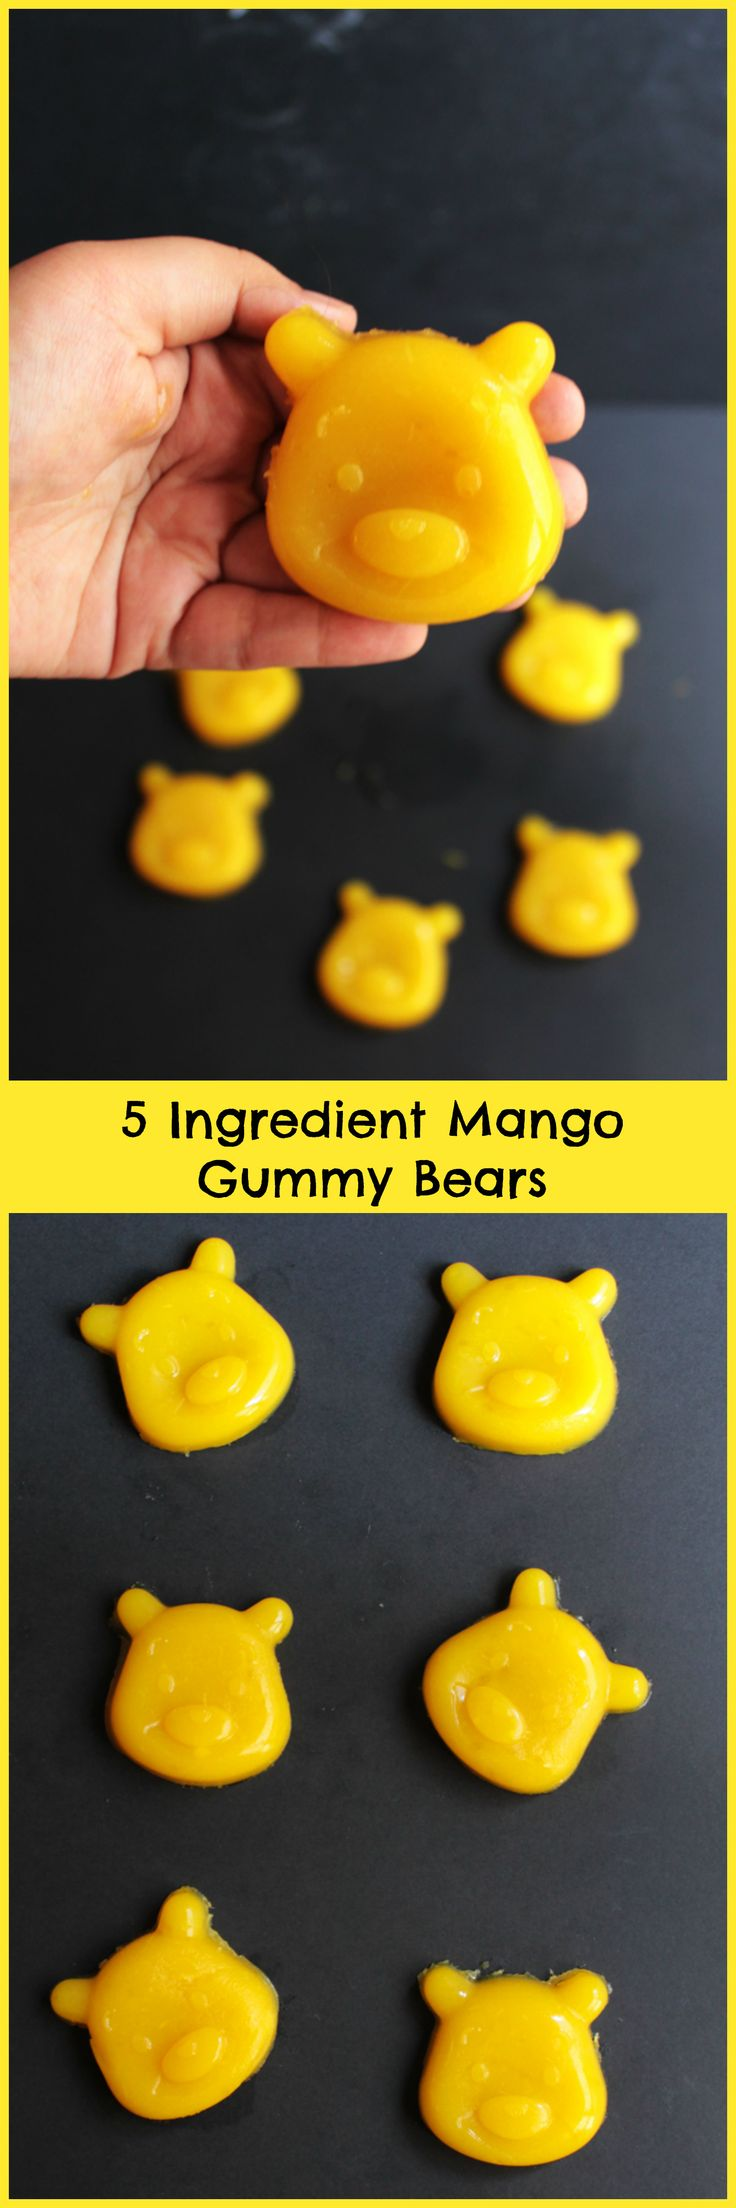 Delicious mango gummy bears made from just 5 ingredients. Made from fresh mango puree and orange juice. Just one tablespoon of added sugar. Ready in an hour.